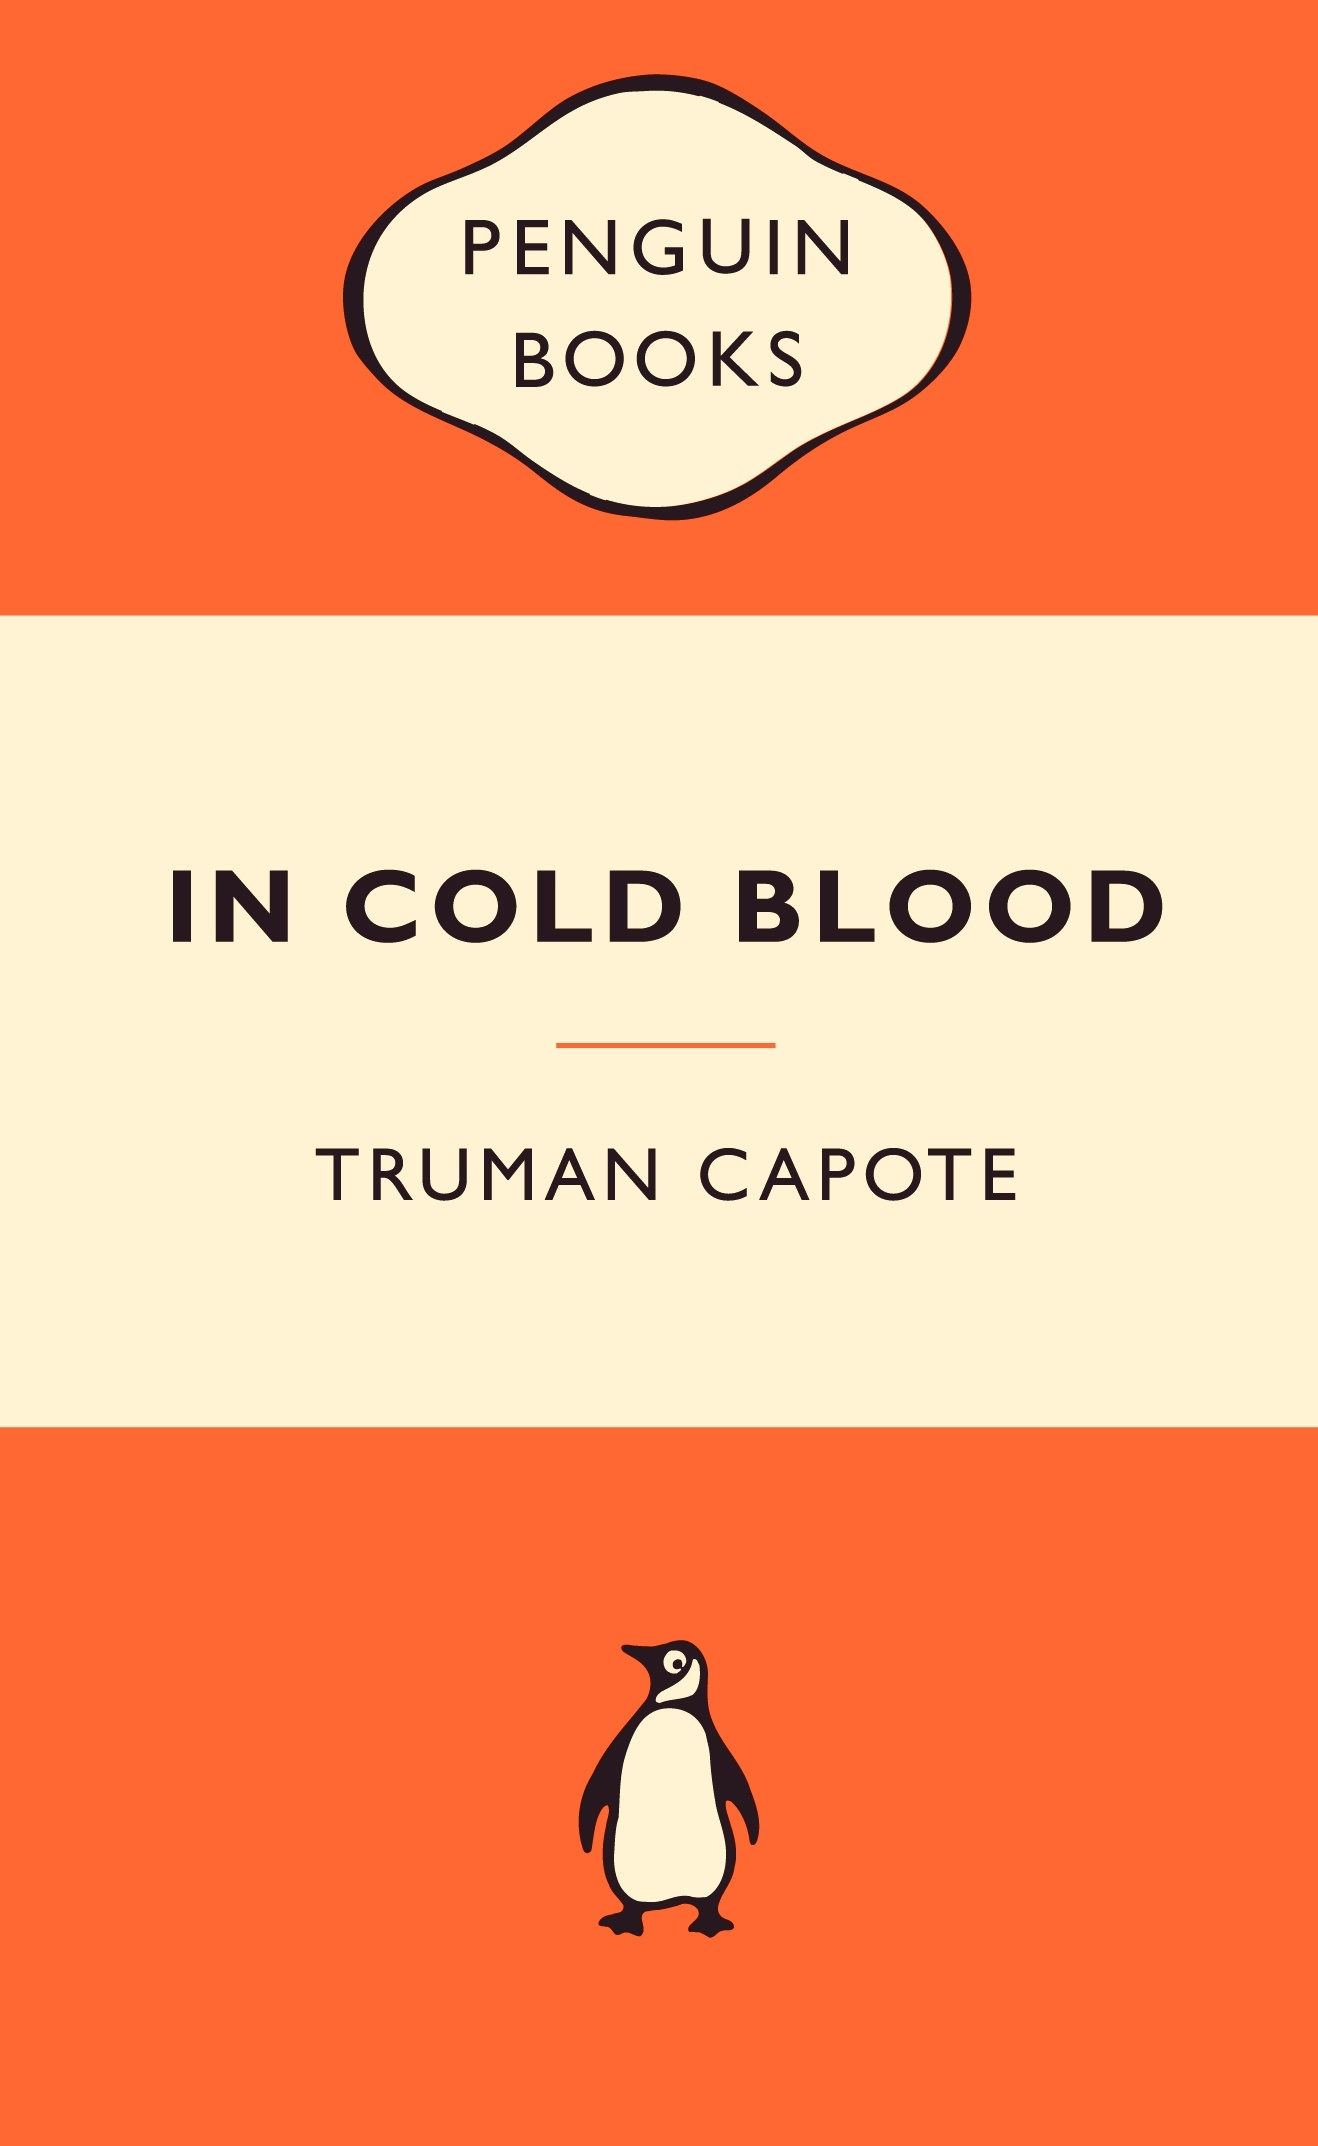 "a review of the story of in cold blood by truman capote Truman capote and the legacy of in cold blood, truman capote and the legacy of in sky,"" a play about truman capote tell the story of capote's."